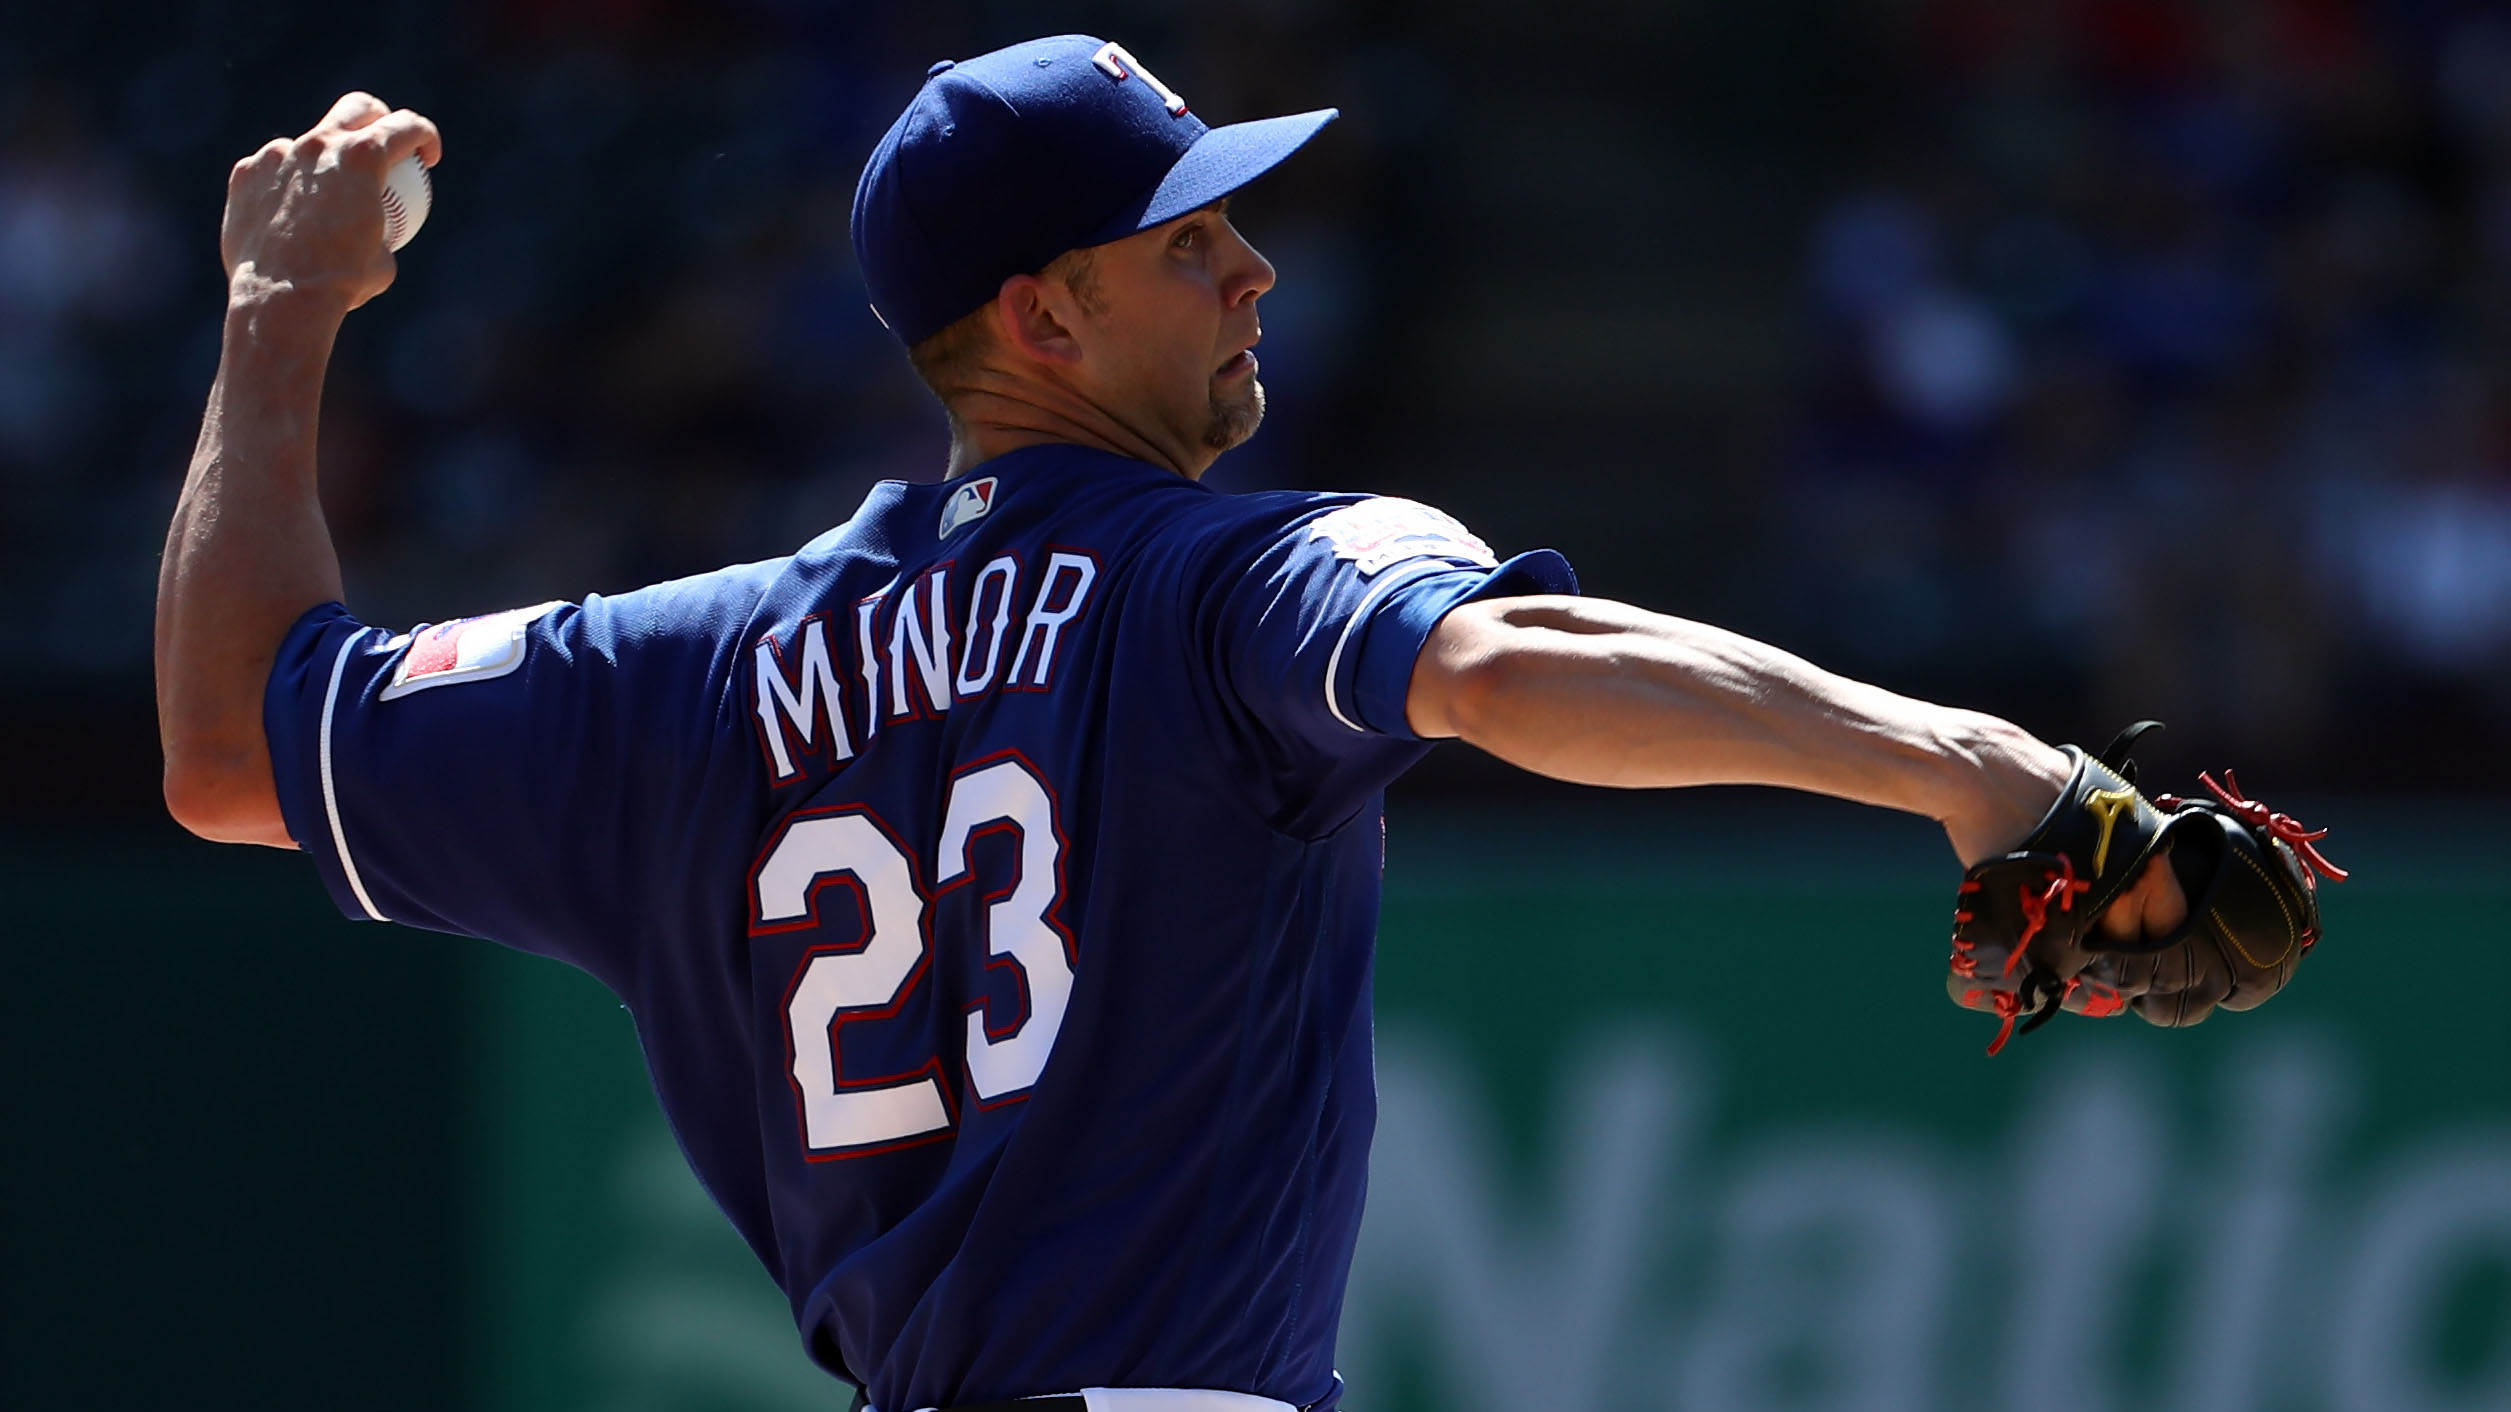 Mike Minor strikes out 200, with help from Ronald Guzman drop